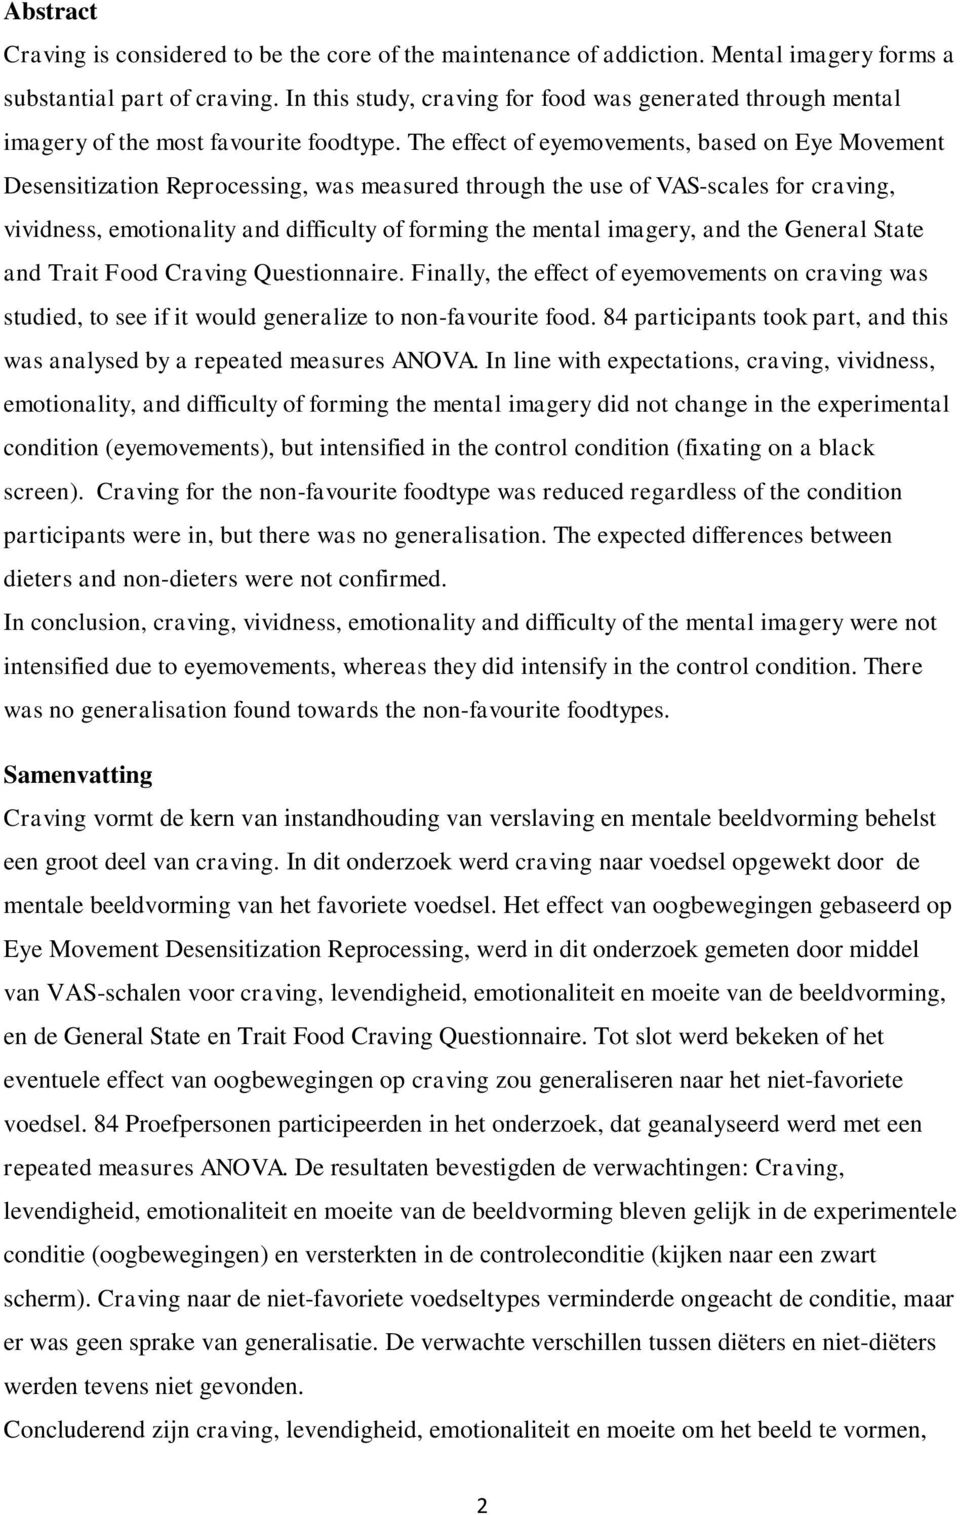 The effect of eyemovements, based on Eye Movement Desensitization Reprocessing, was measured through the use of VAS-scales for craving, vividness, emotionality and difficulty of forming the mental